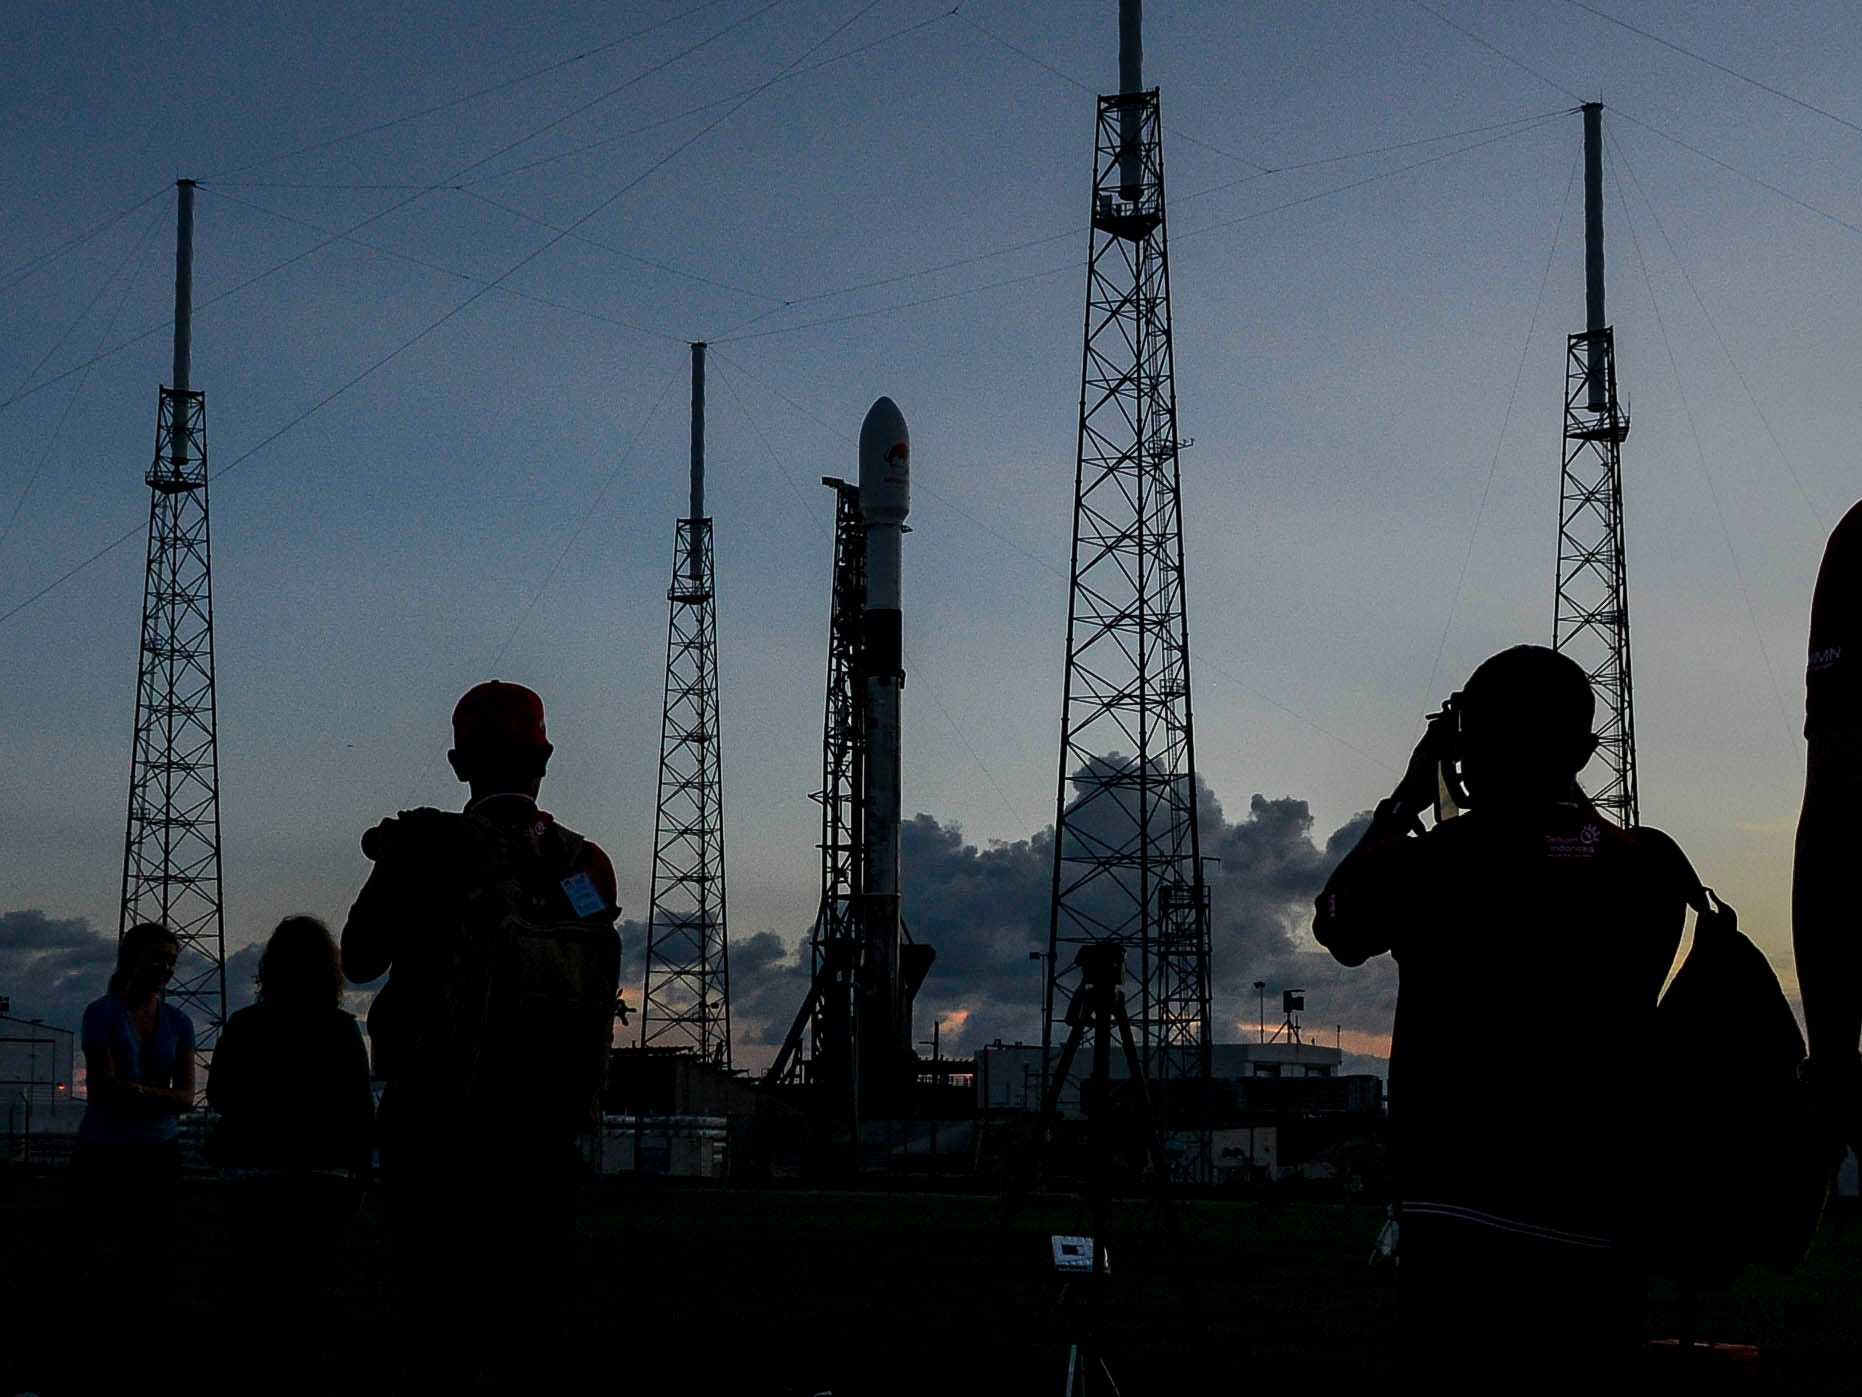 A SpaceX Falcon 9 rocket sits ready to launch at Complex 40 at Cape Canaveral Air Force Station.  The rocket is set to launch early Tuesday morning with an Indonesian communications satellite.